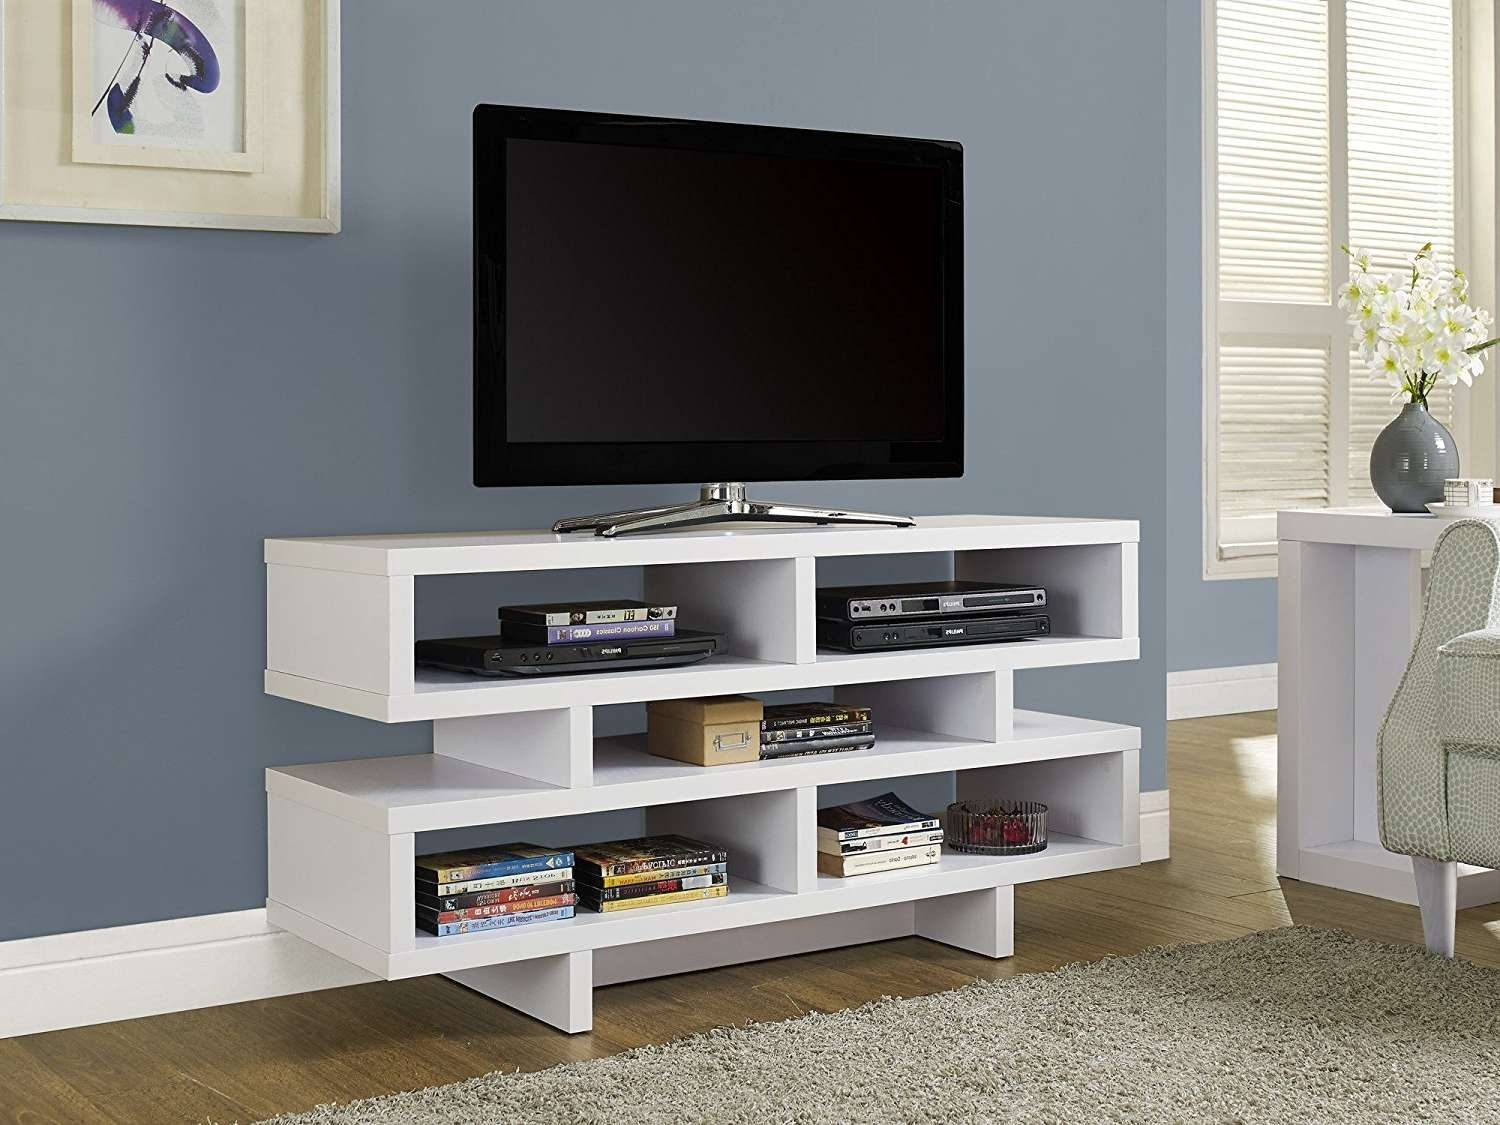 Tv Stand 40 Inches Wide Tags : 31 Striking Tv Stand 40 Inch Throughout Tv Stands 40 Inches Wide (View 9 of 15)